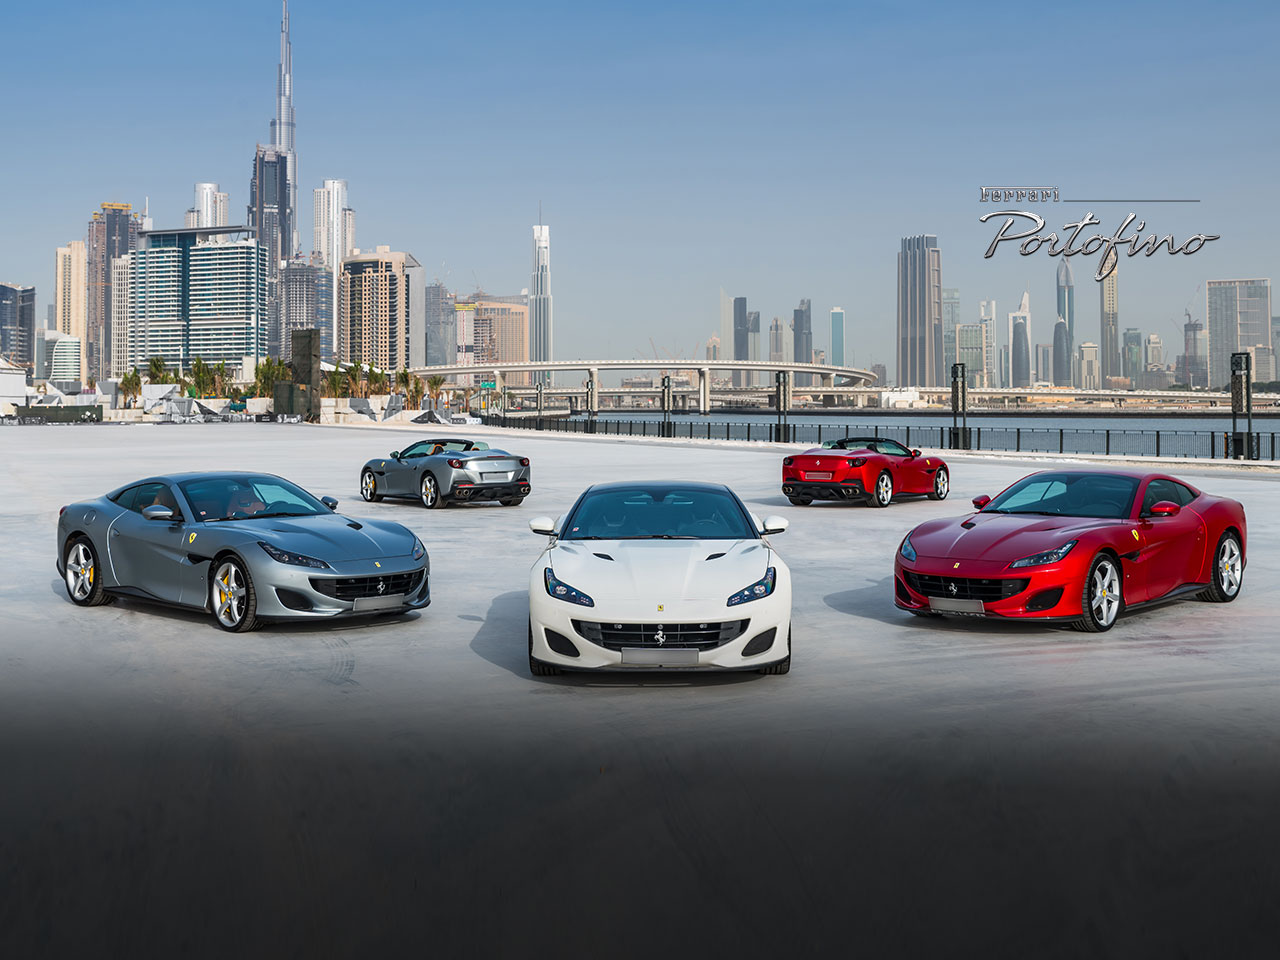 Ferrari Portofino: Test Drive In The Middle East. Auto